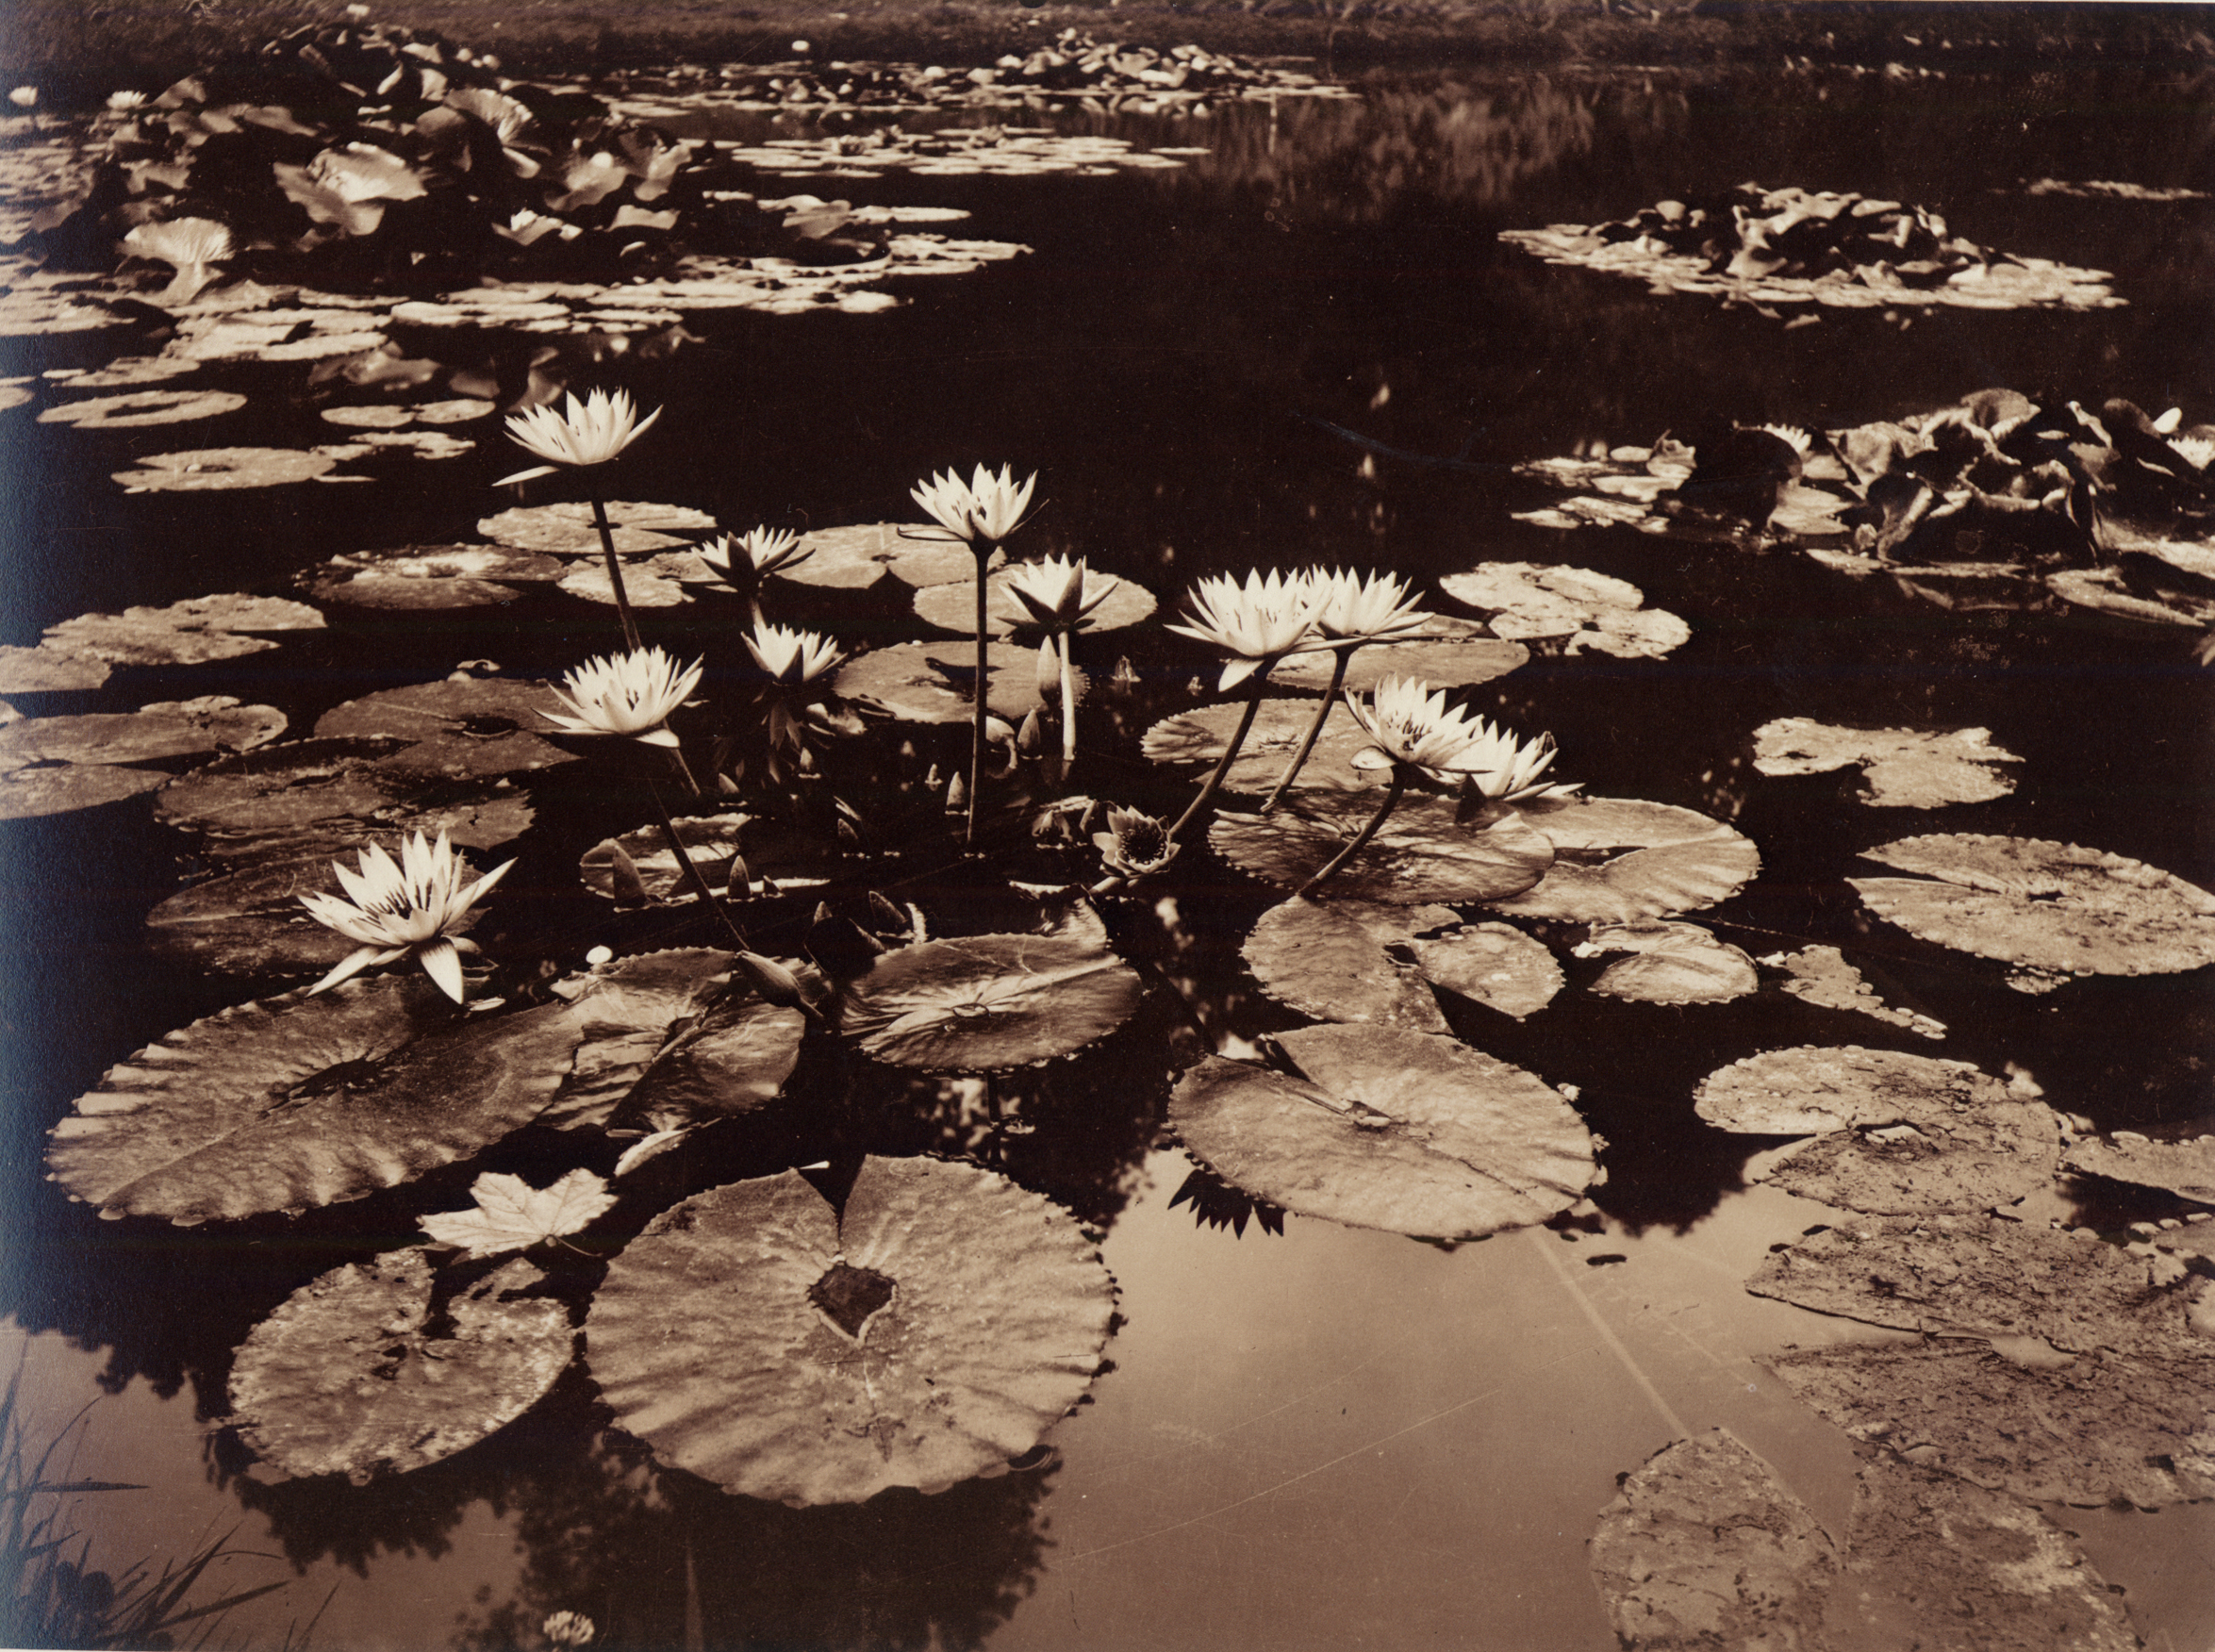 While Claude Monet painted water lilies, Eugène Atget photographed them. Different ones, of course—these 'Nymphaeas, Versailles' lived far from Monet's pond, around 1910, and Atget captured their nature: borne by water, fired by the sun. (Collection of Michael Mattis and Judith Hochberg)